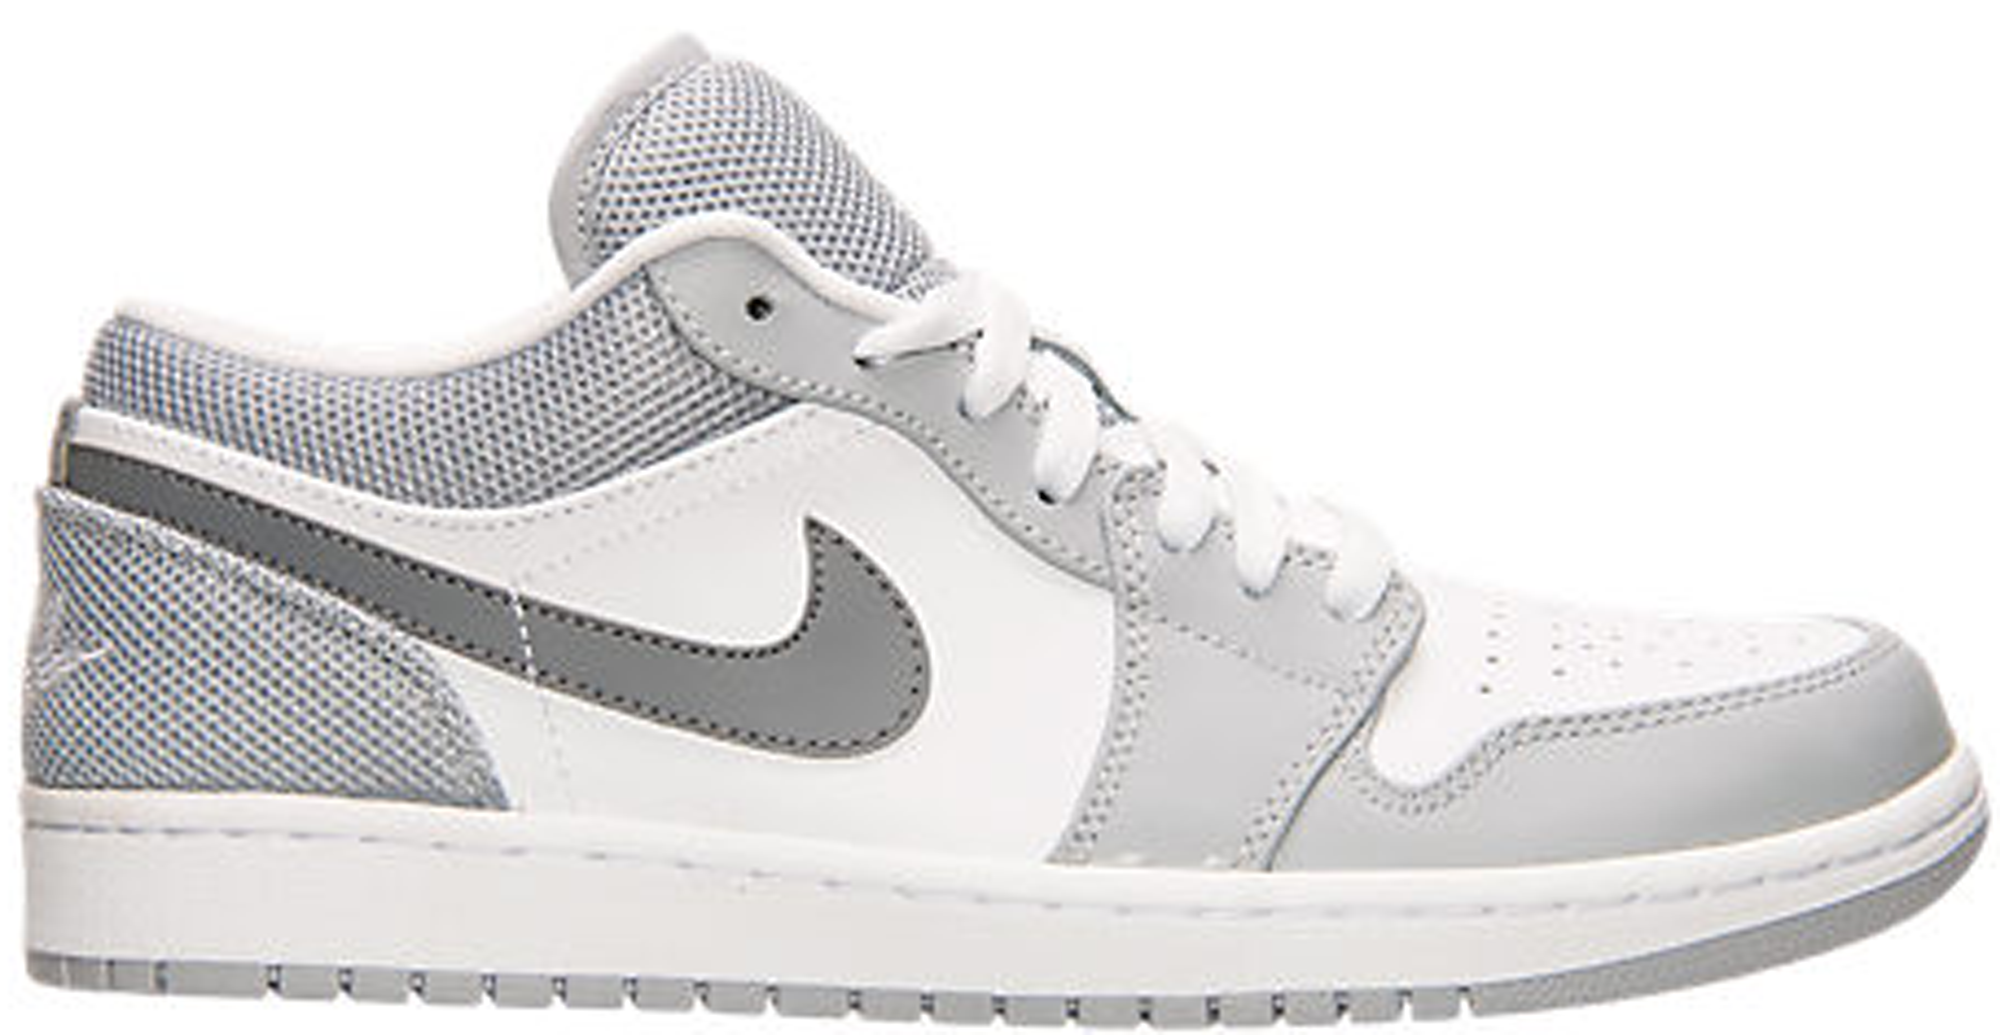 GS Nike Air Jordan 1 Low Shoes 553560-003 Youth Basetball  cool grey 6.5Y